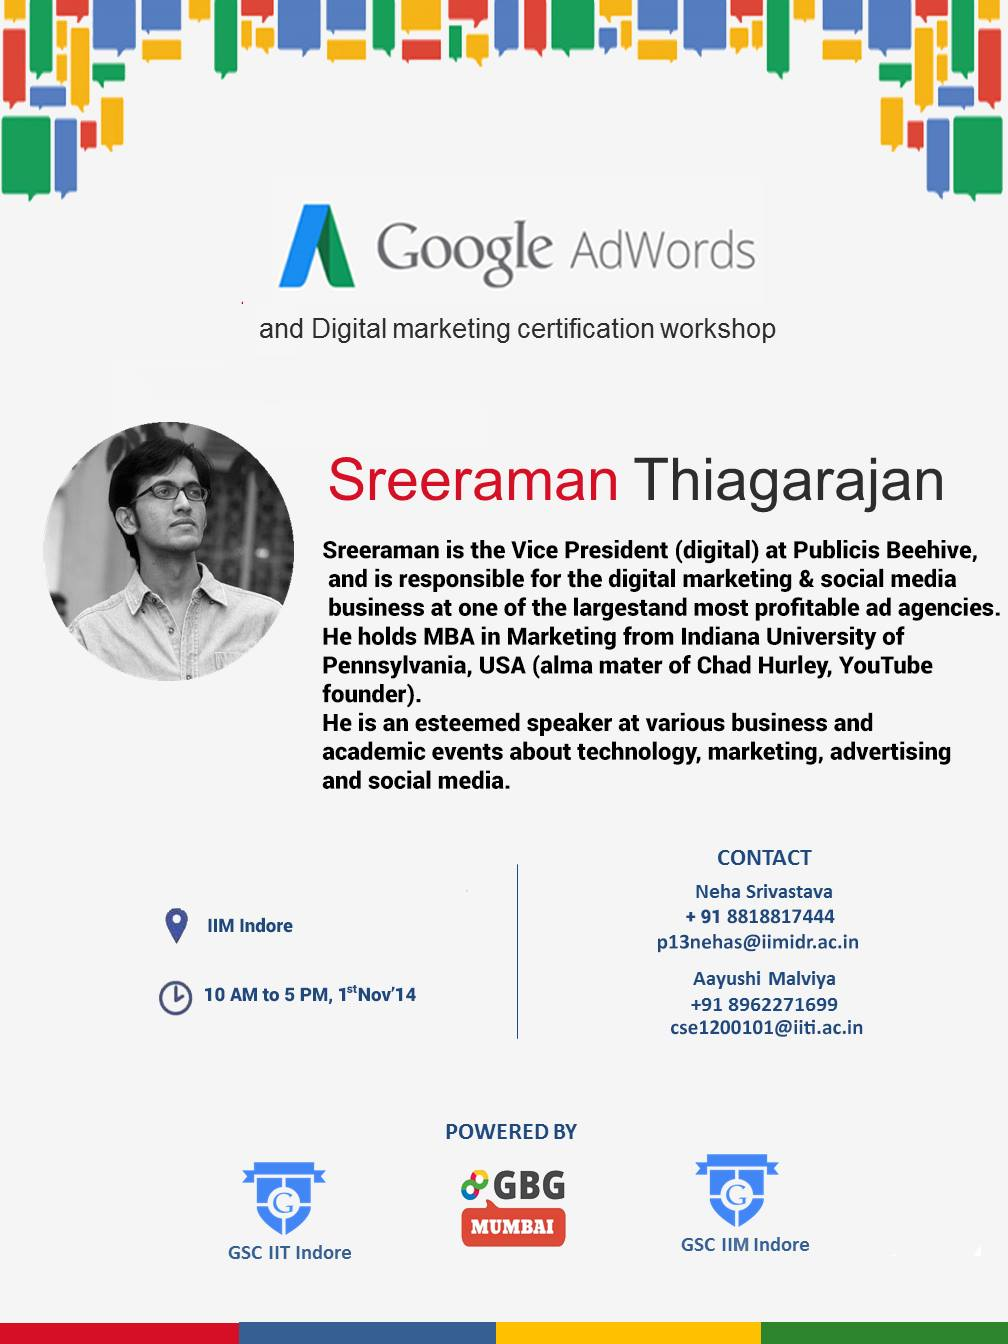 AdWords Workshop conducted by Sreeraman, Chapter Manager of GBG Mumbai